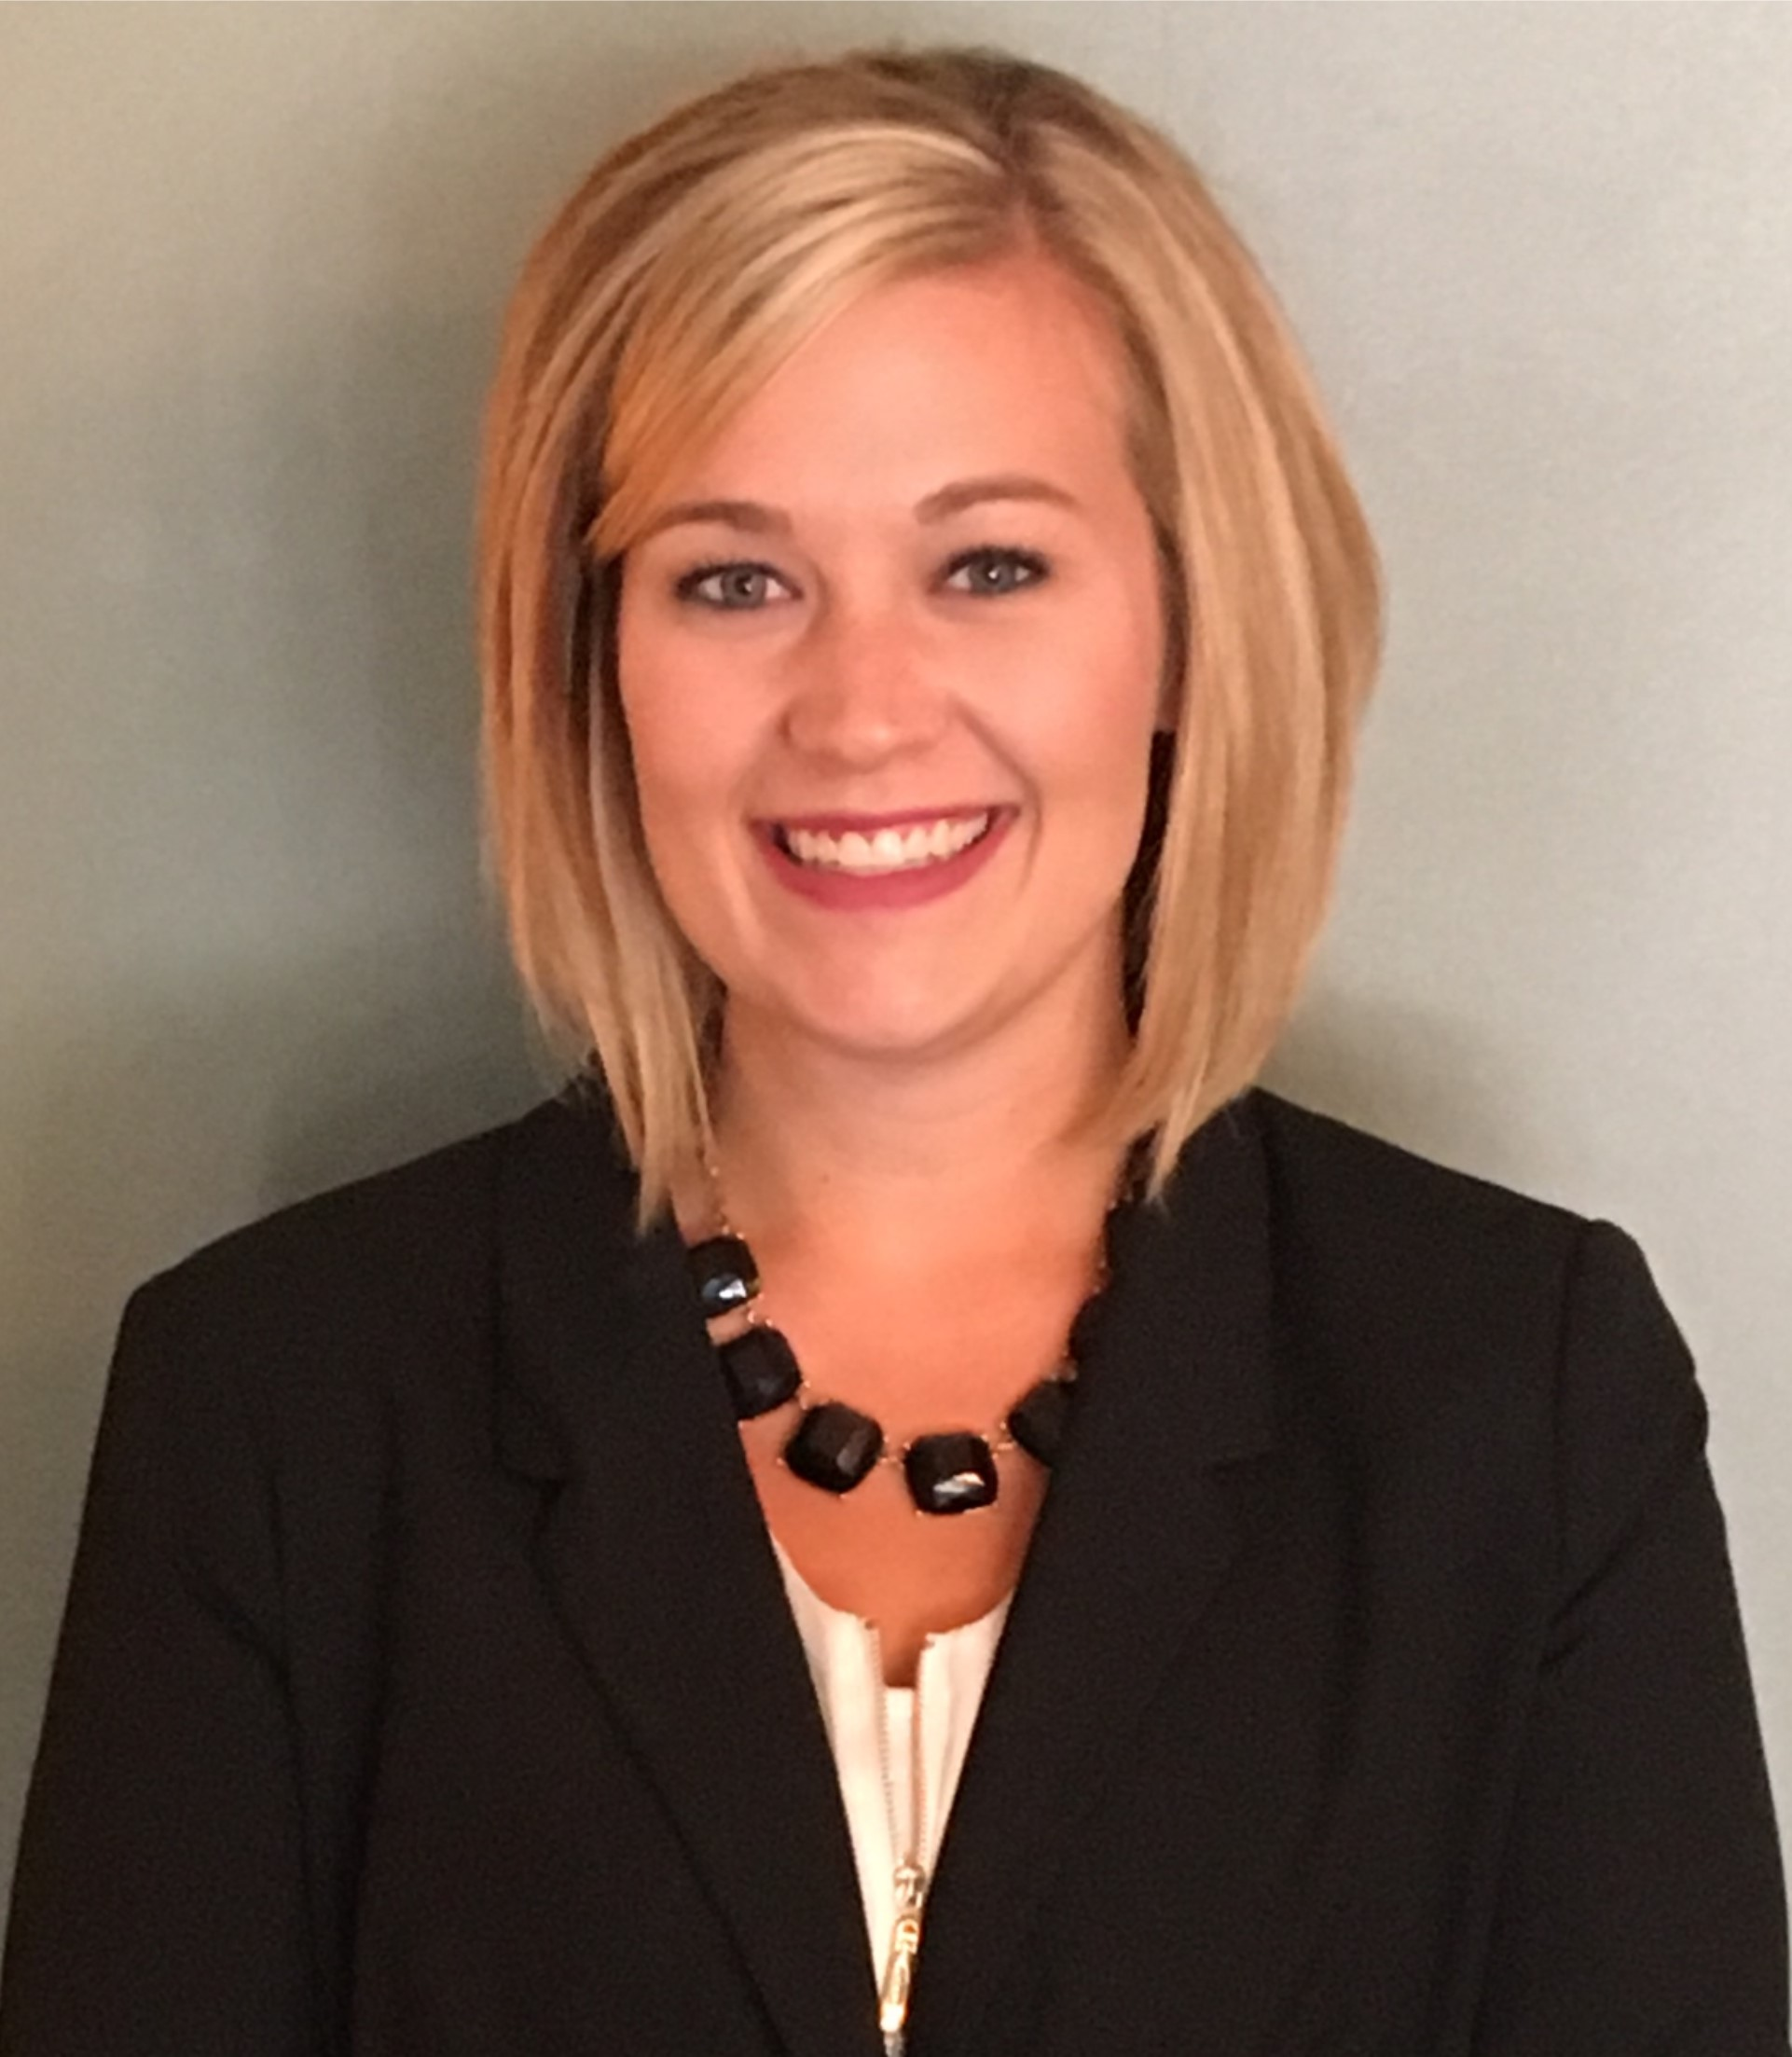 Profile picture of Neptune Society Service Manager/Funeral Director, Staci Hansen